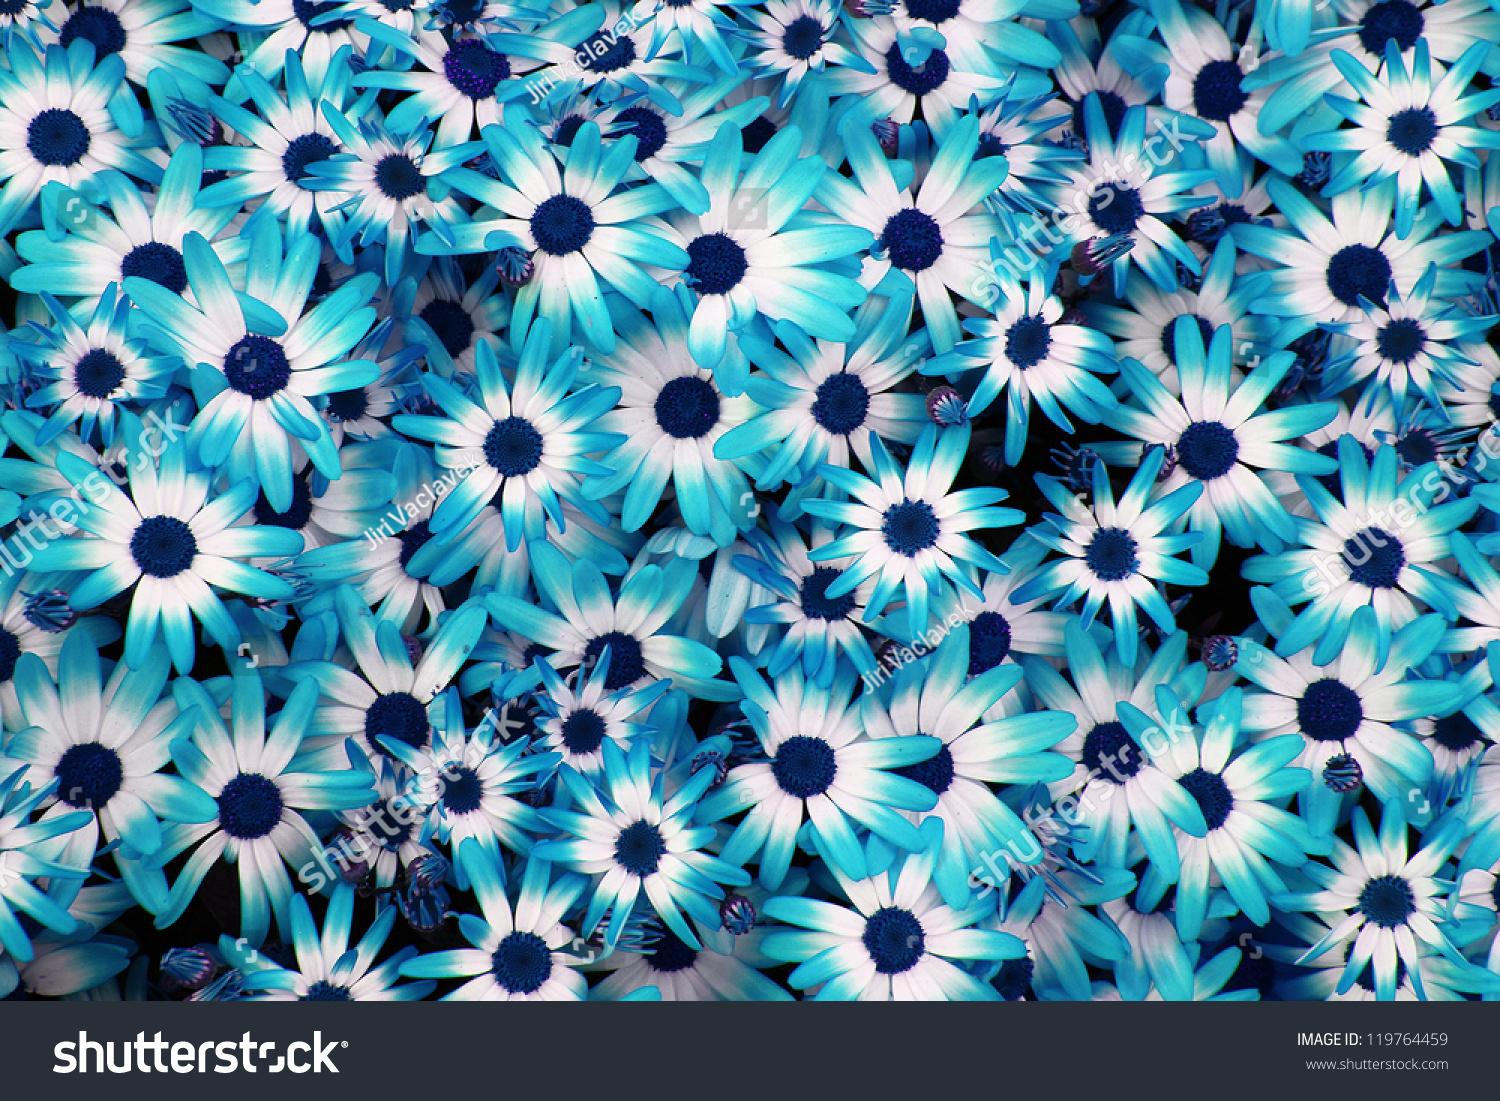 Very Nice Blue Flowers Background Stock Photo Edit Now 119764459